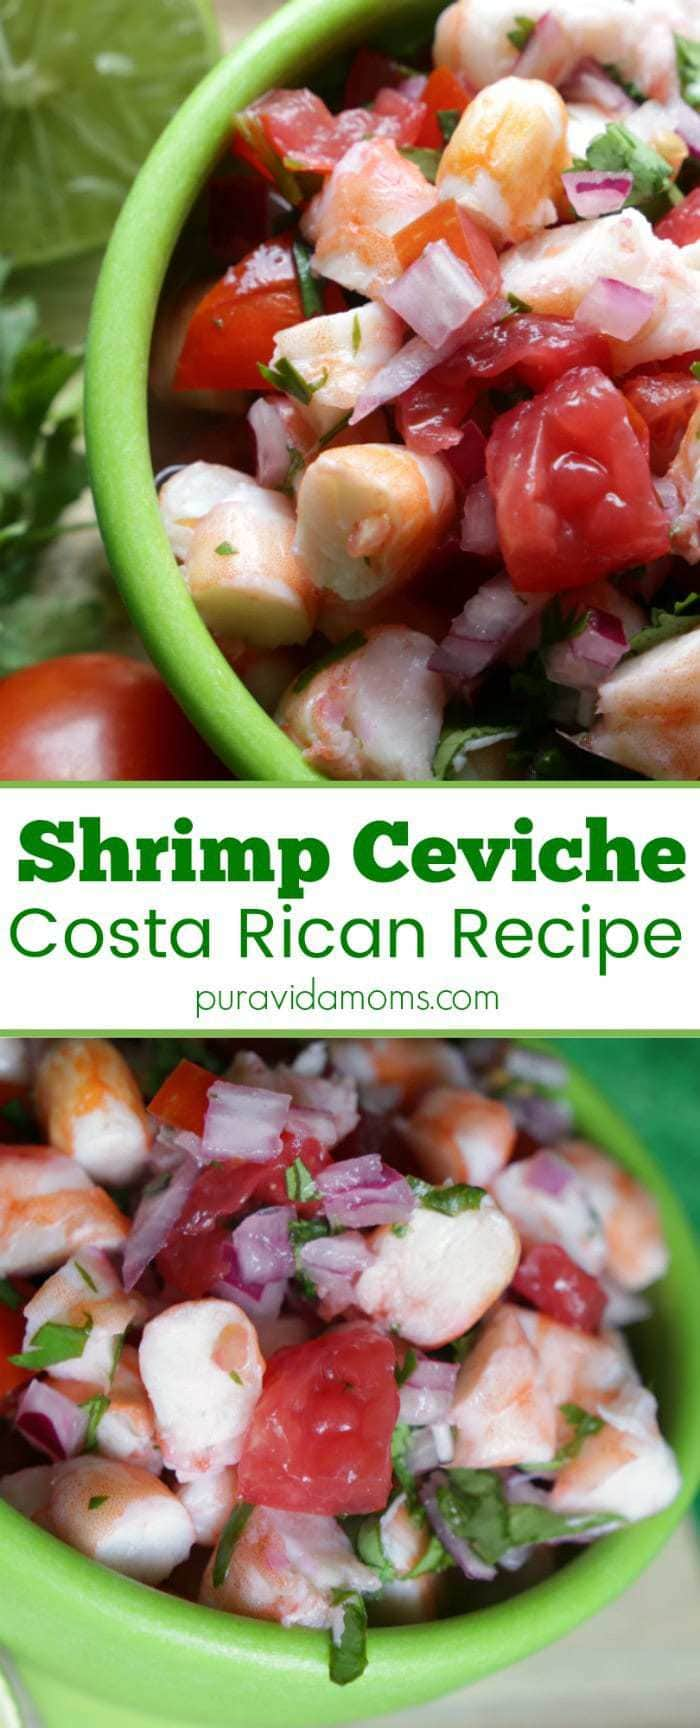 This low calorie Costa Rican shrimp ceviche is the perfect appetizer or meal for meatless Monday! A typical Costa Rican cuisine recipe found on almost any menu and easily prepared at home! #ceviche #costarica #mealtlessrecipe #shrimp #lentrecipe #latinamericanfood #costaricanfood